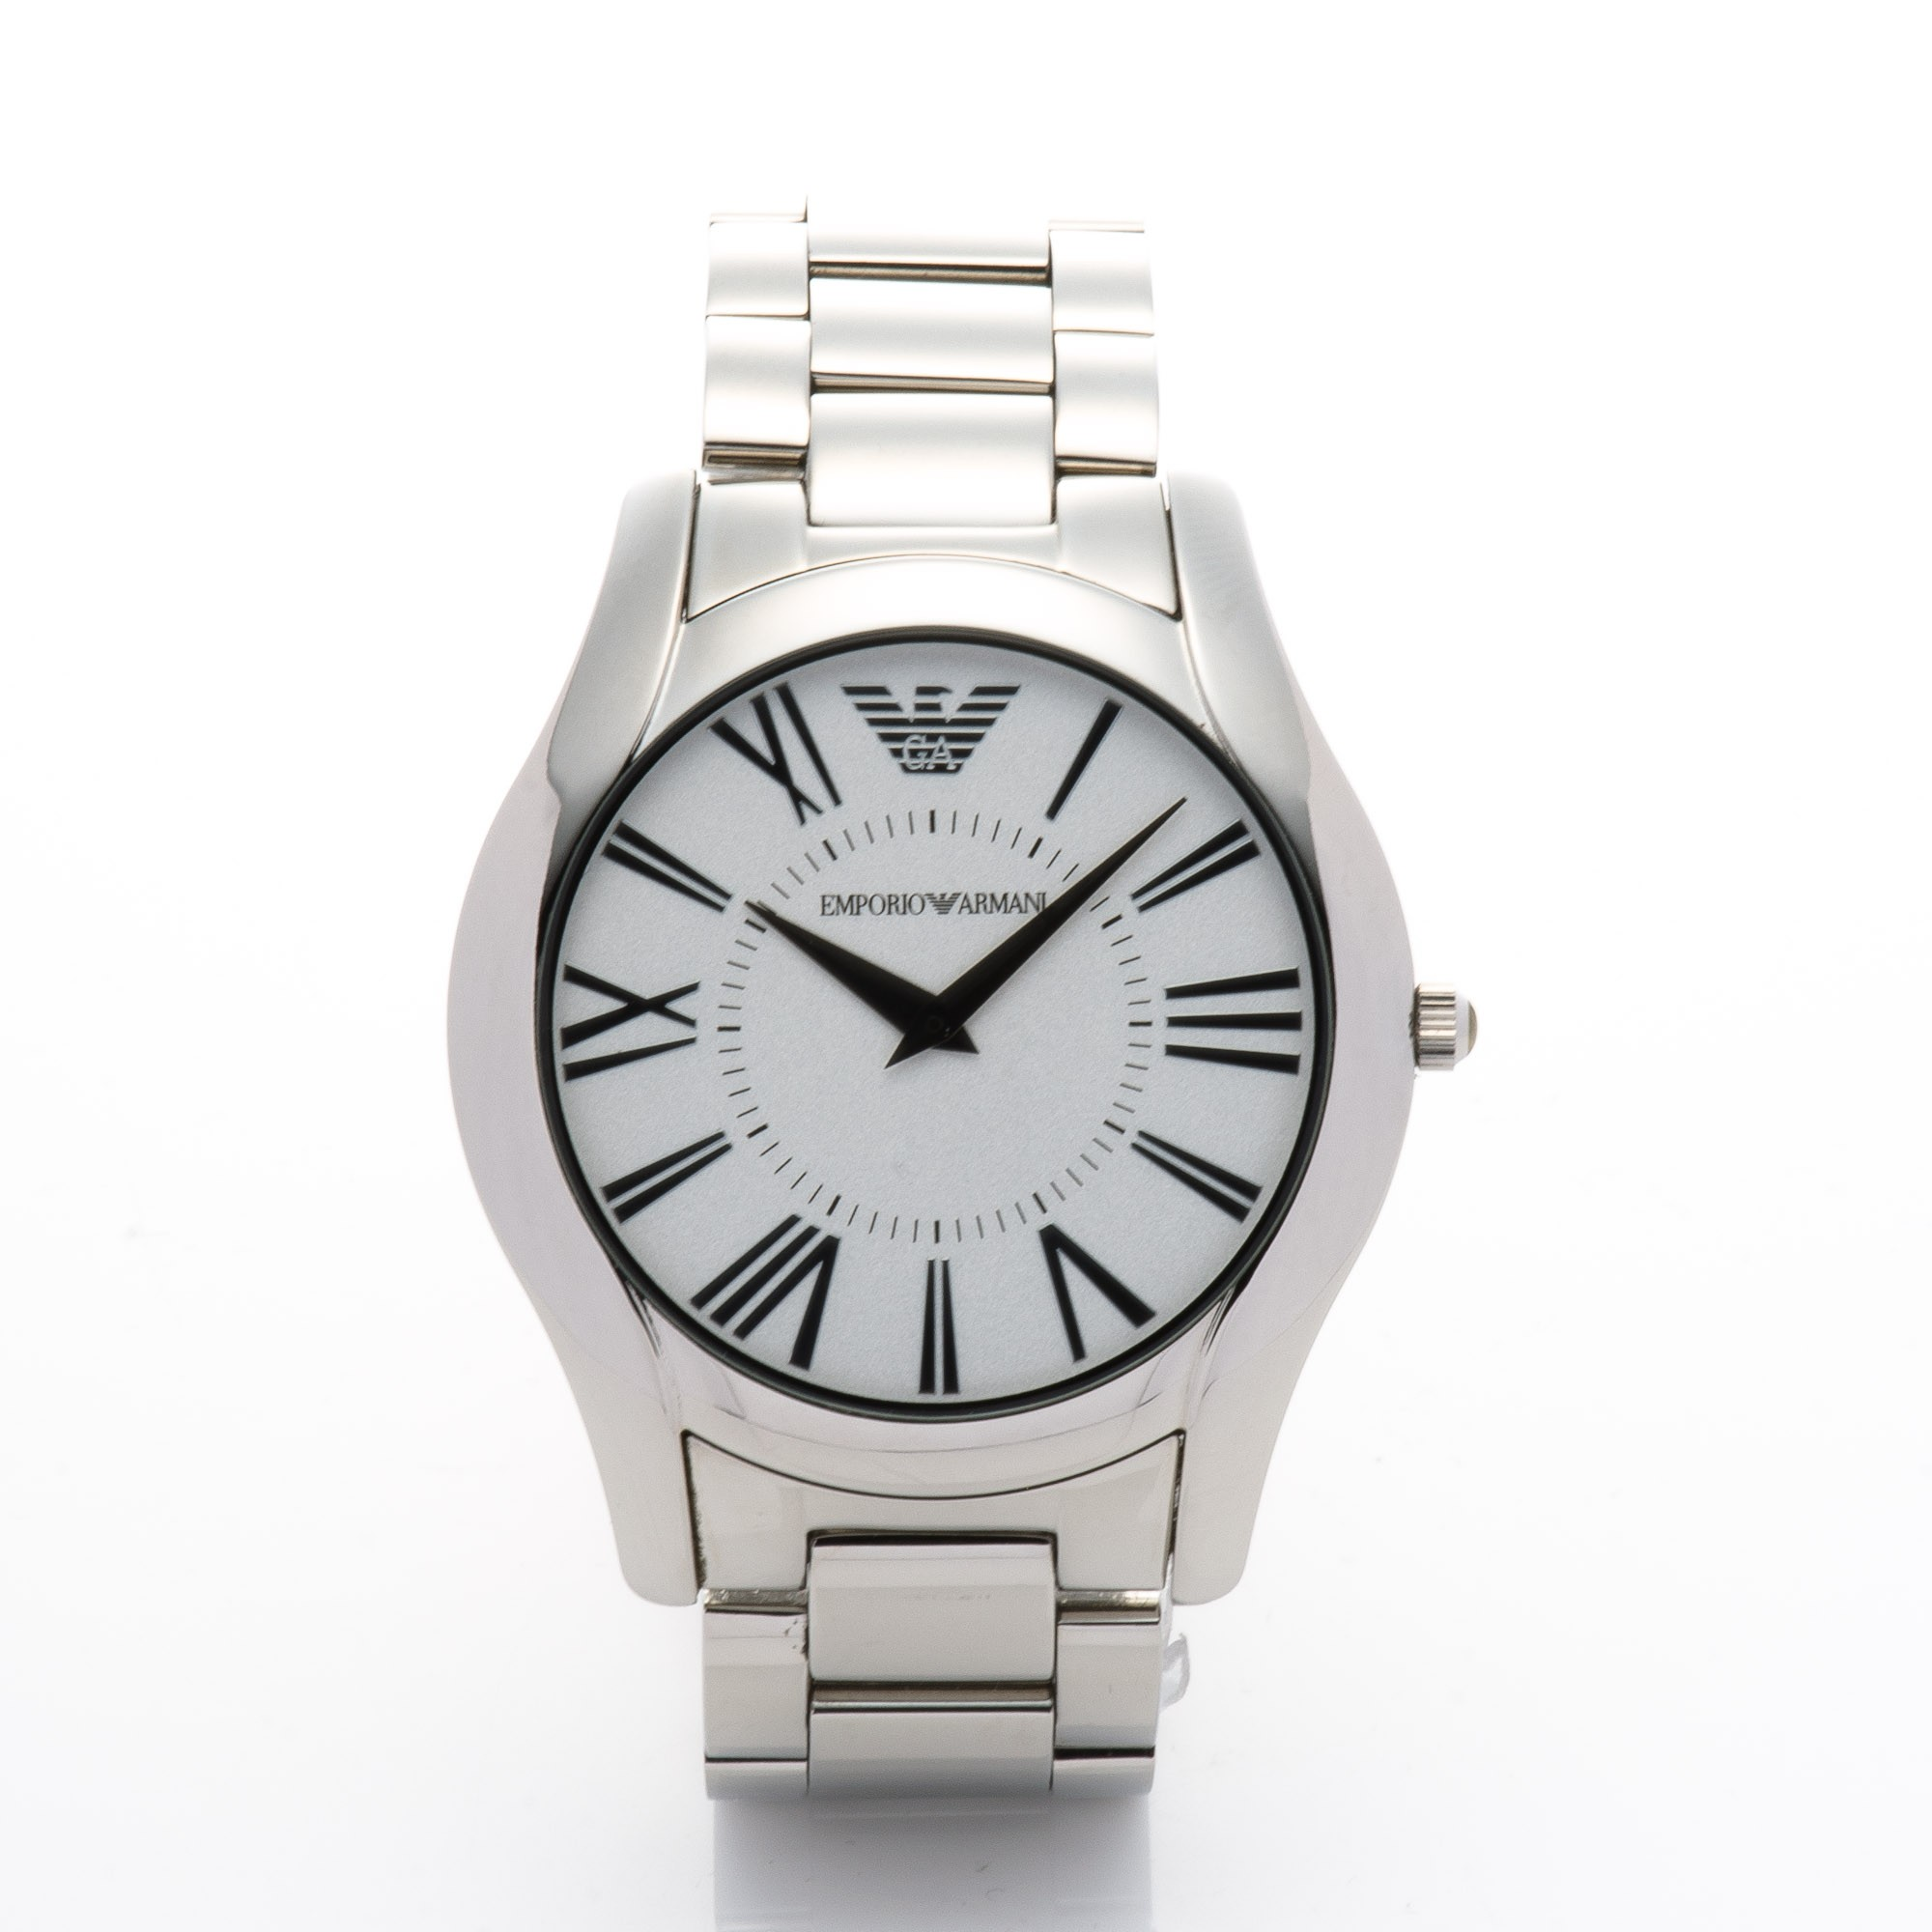 Buy Silver Tone Stainless Steel Armani Watch At Lxr Amp Co